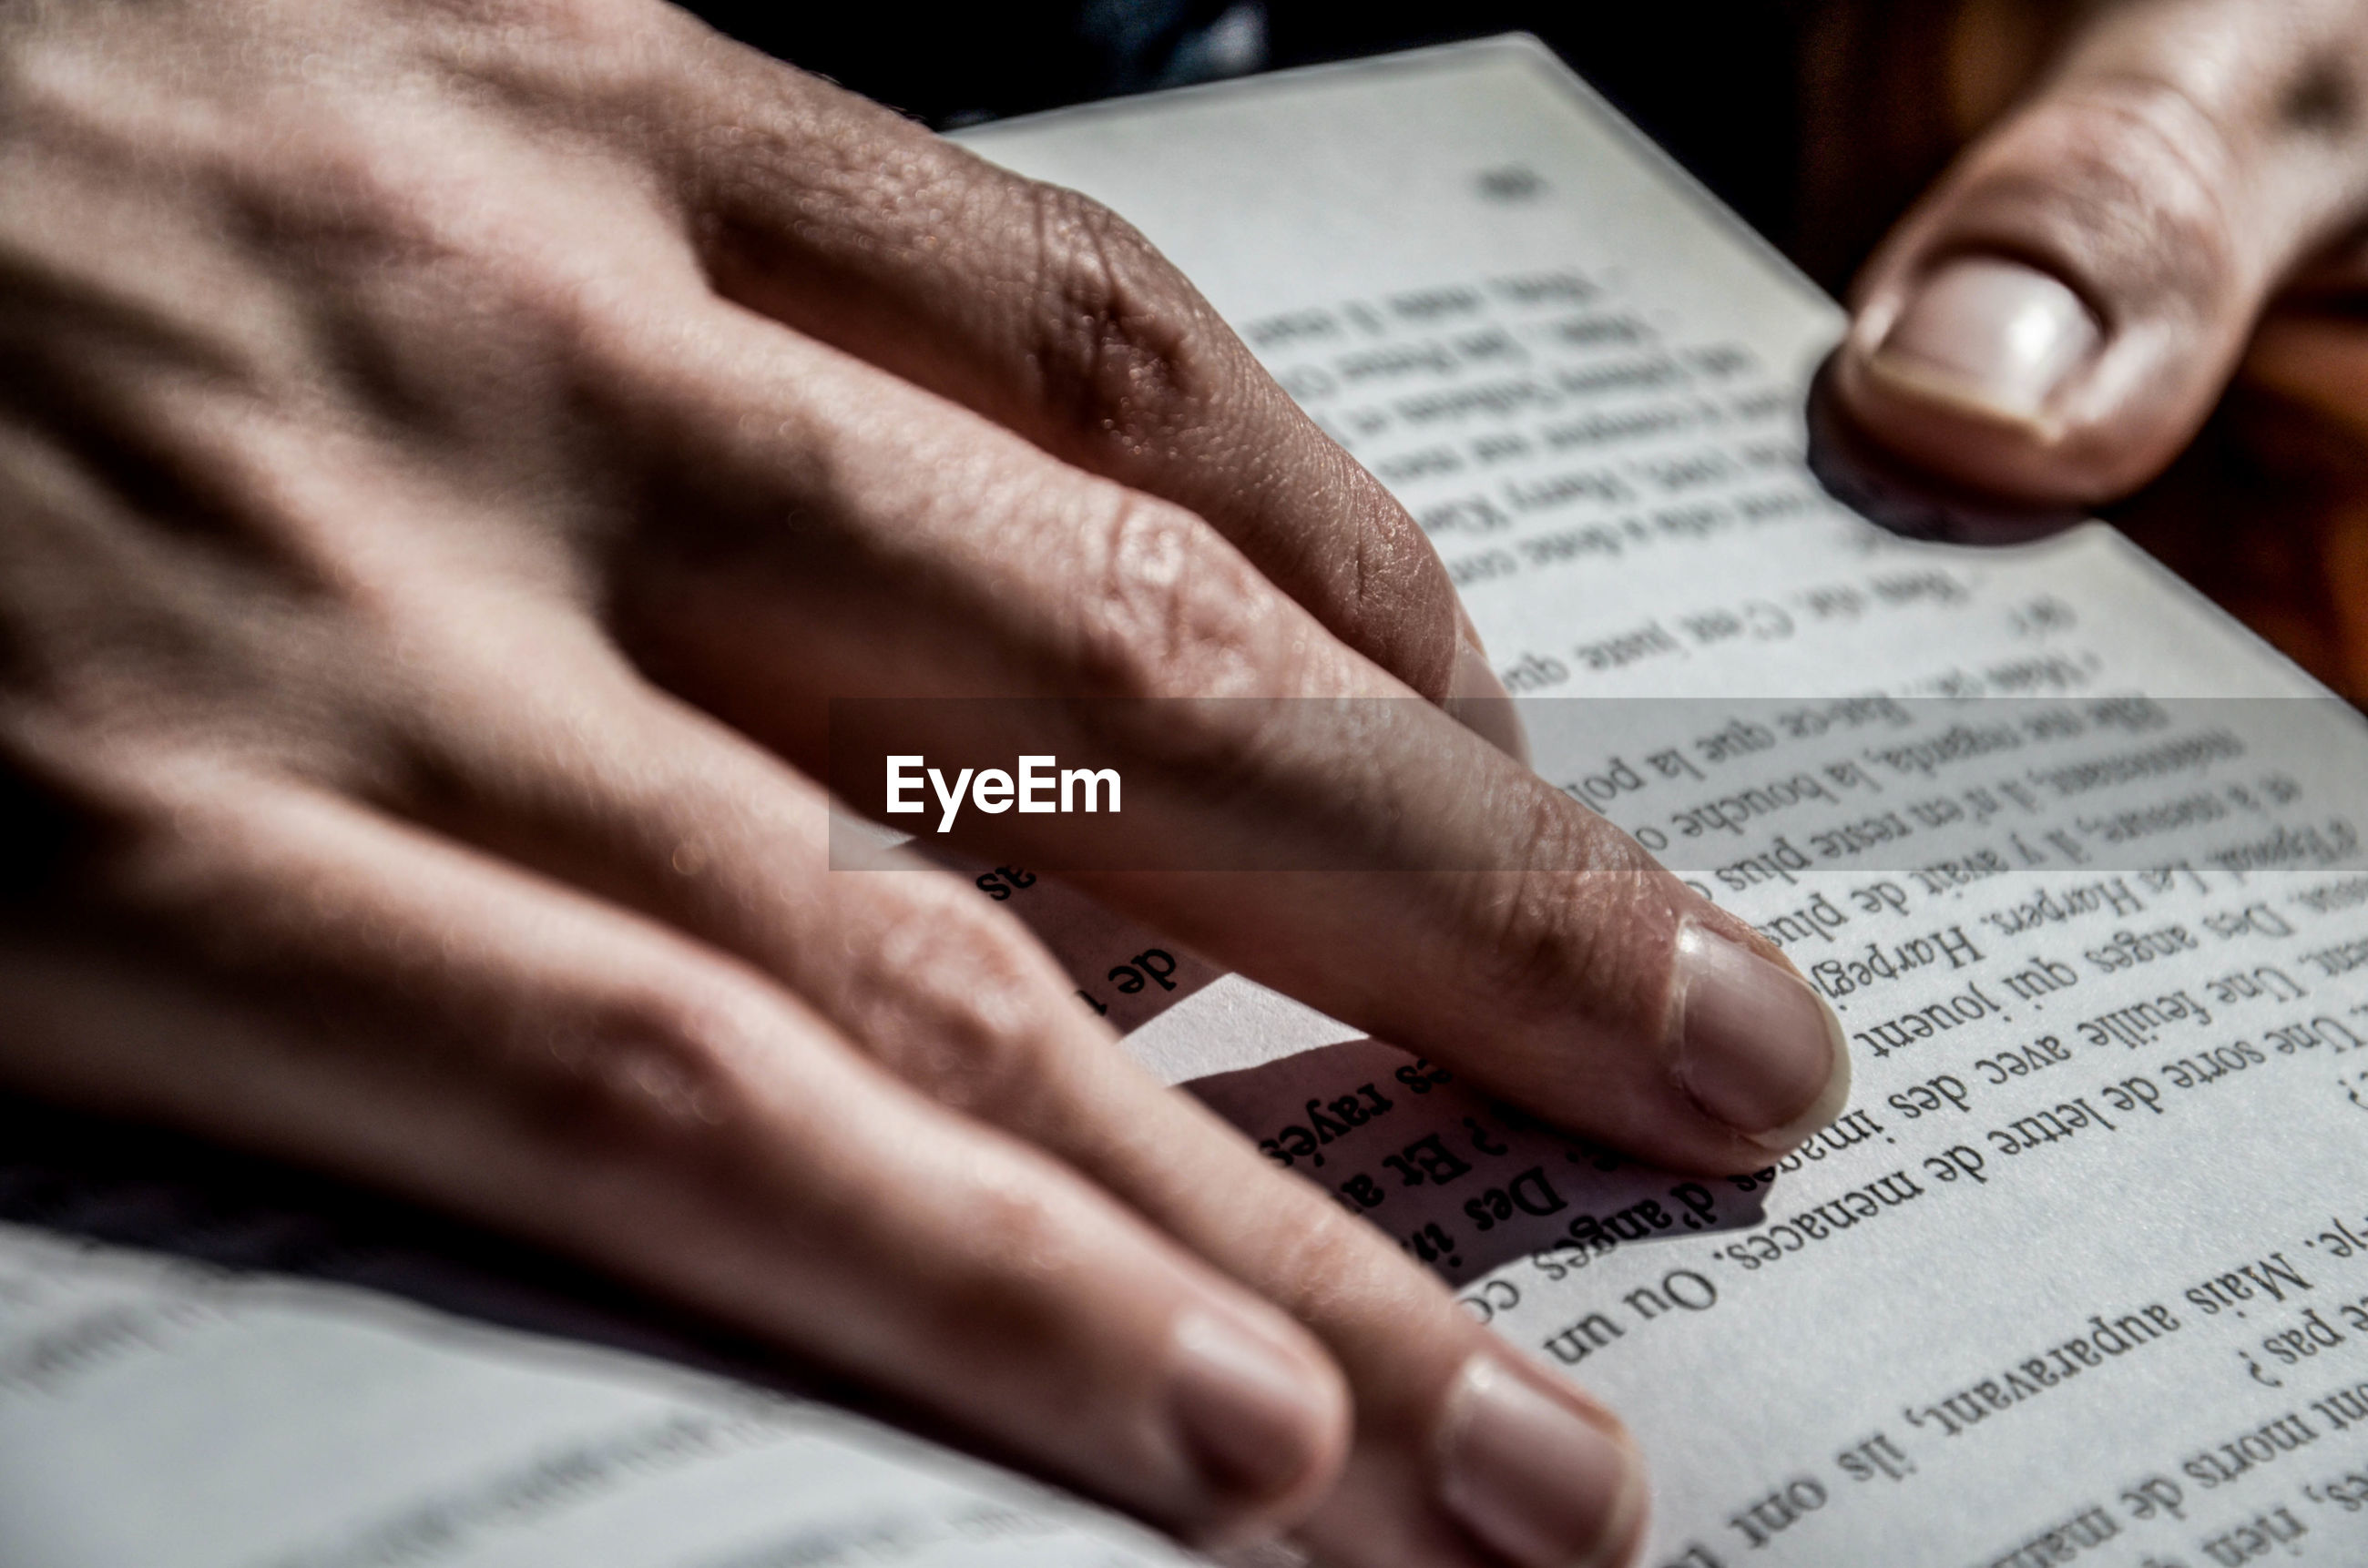 Cropped image of hands holding book